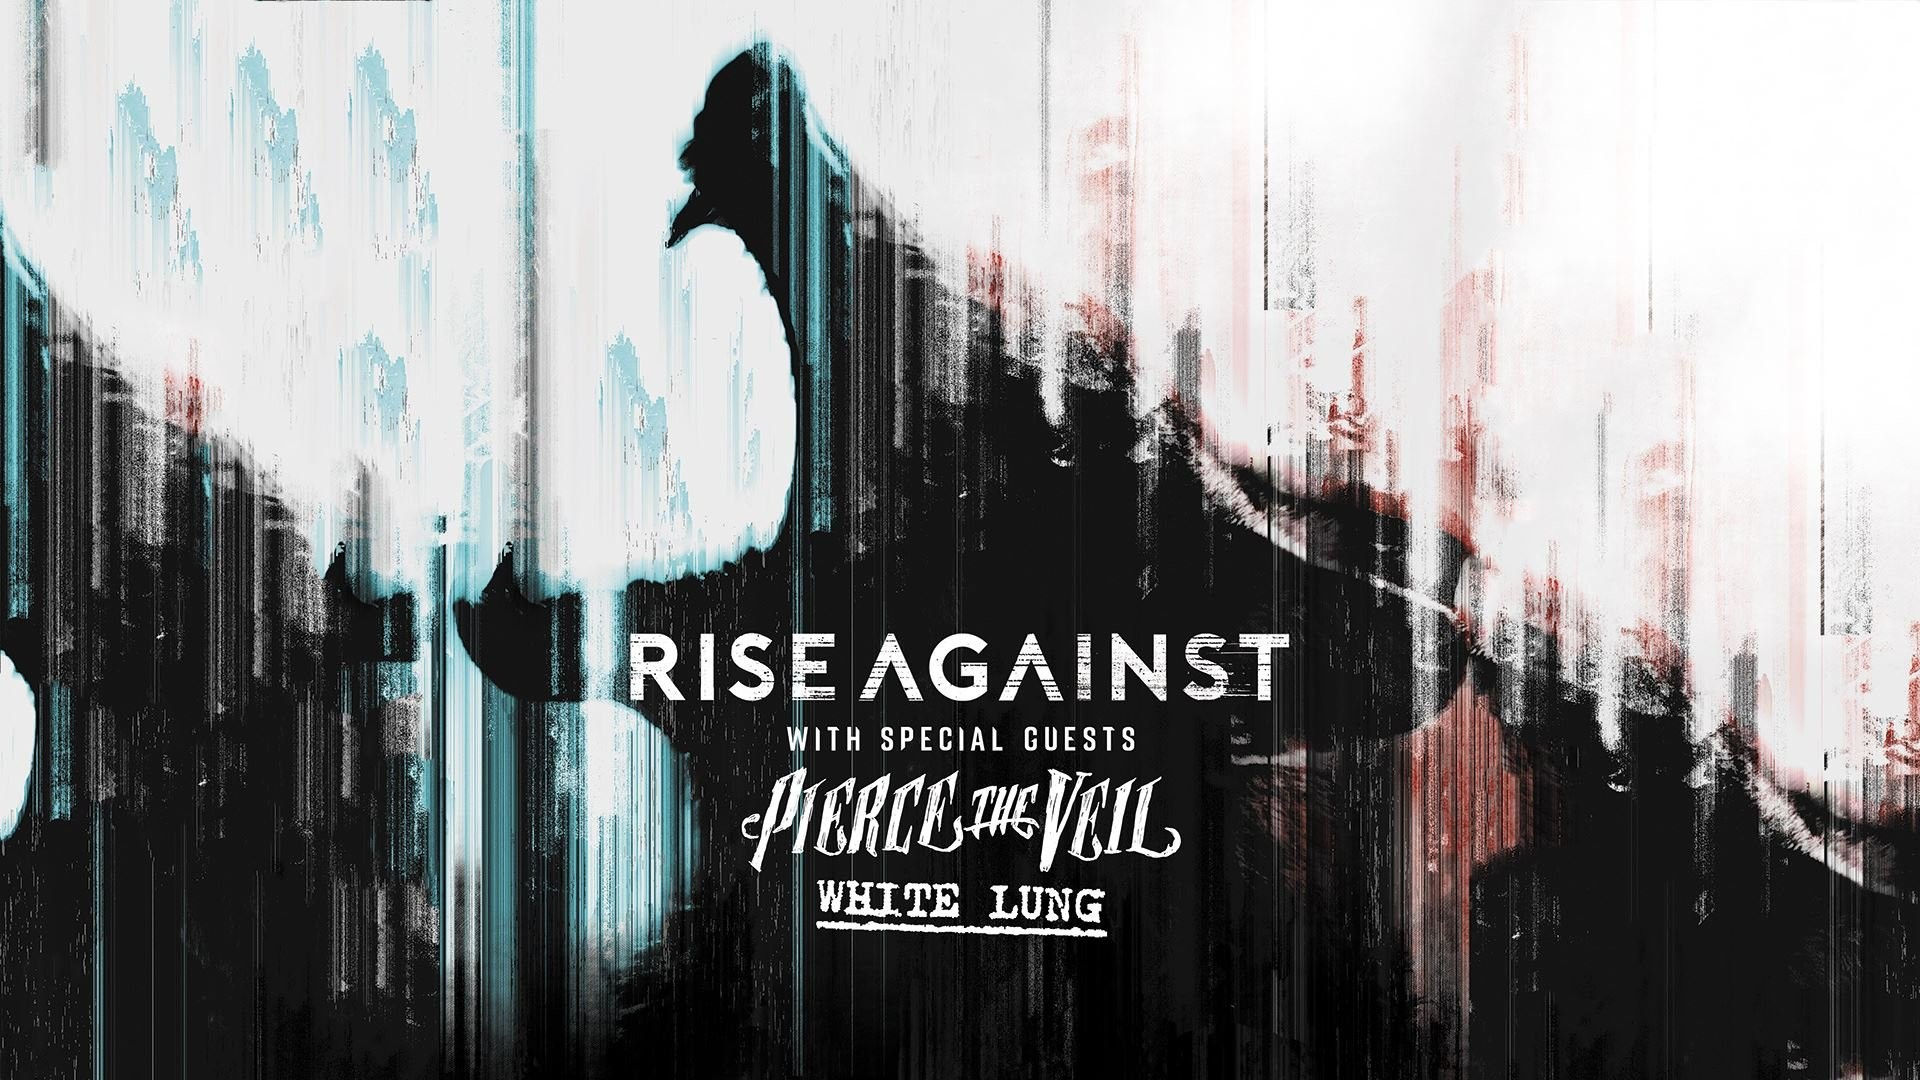 Rise Against Wallpaper (74+ Images